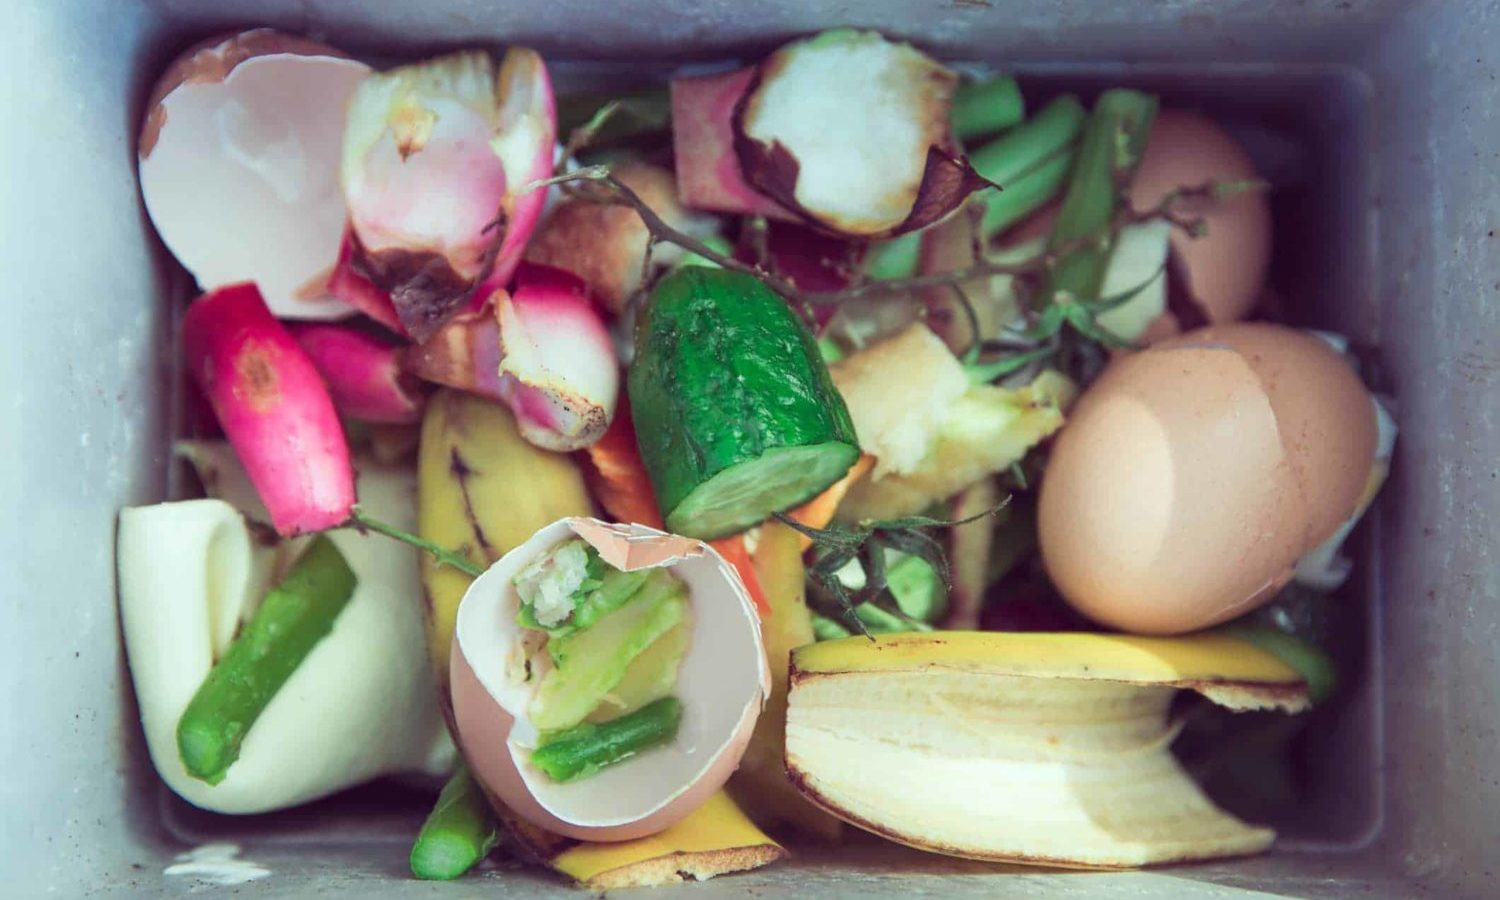 On April 18, 2018 the European Union passed the first ever European-wide legislation on food waste.